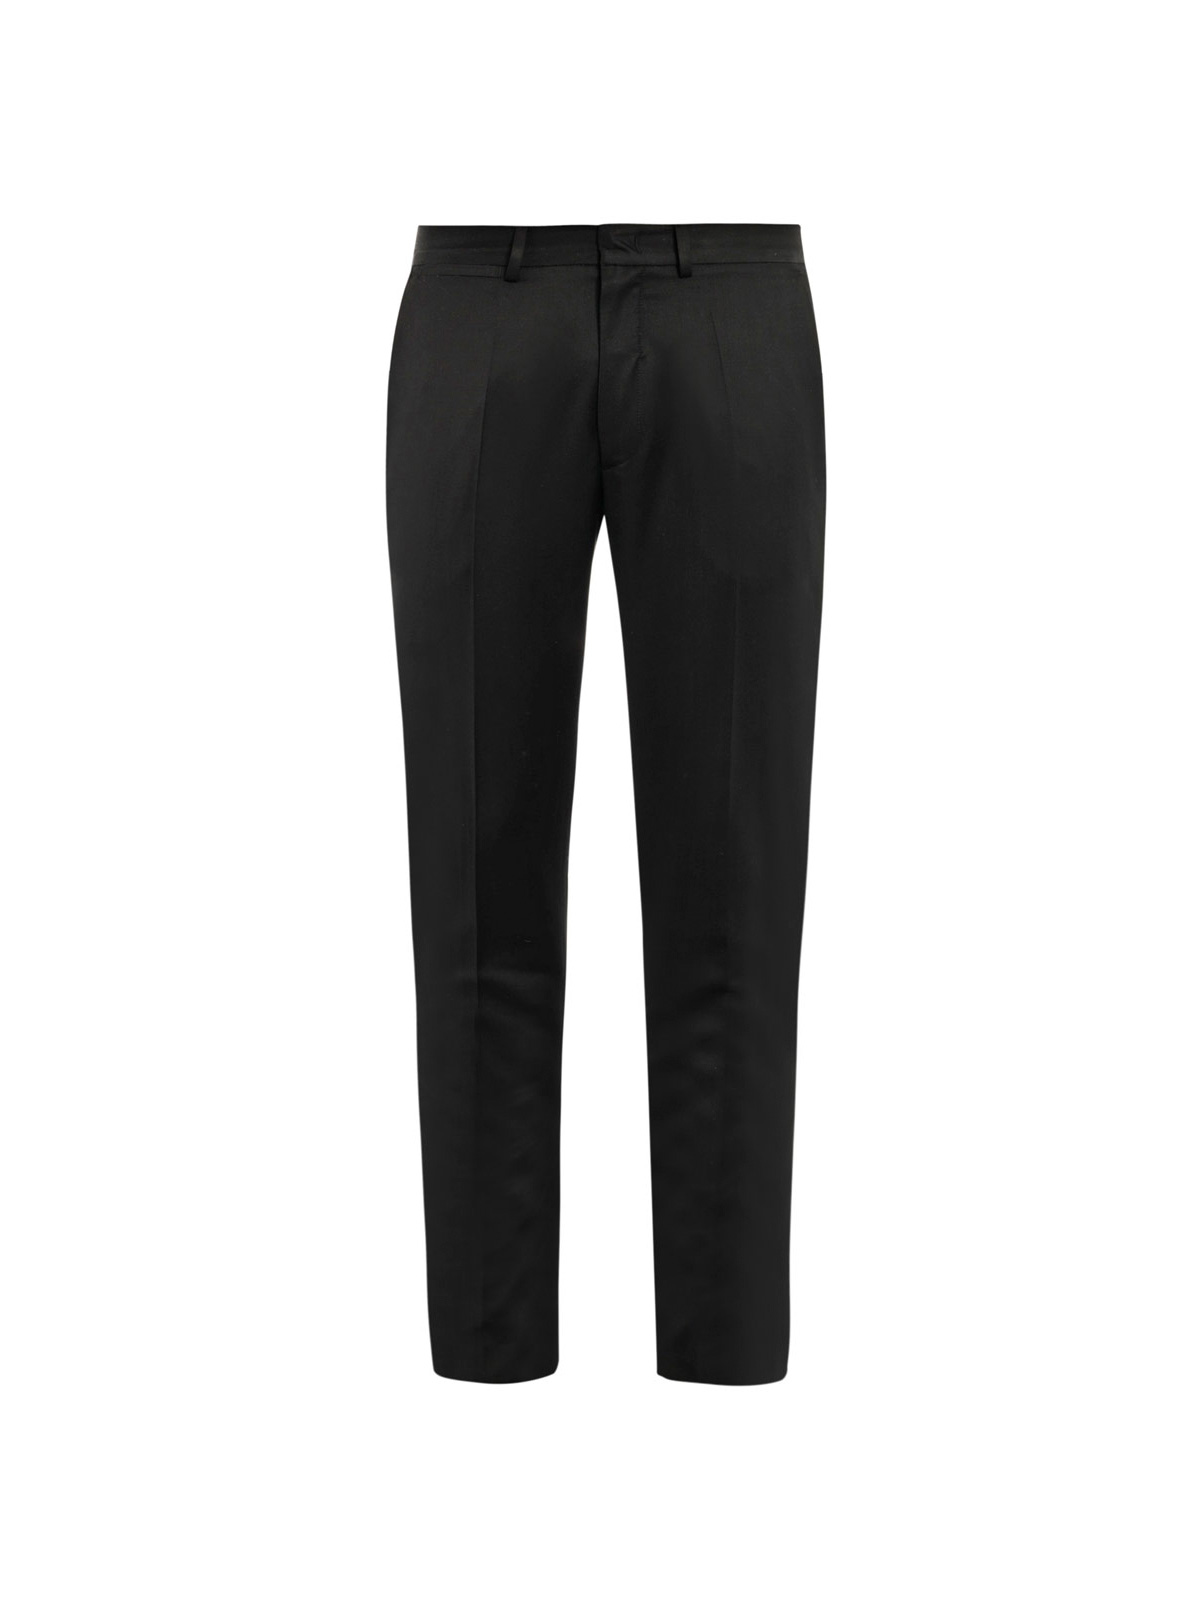 Sienna Peg Leg Trousers. two side pockets. Black burnout-style trousers. and black lining underneath. 28